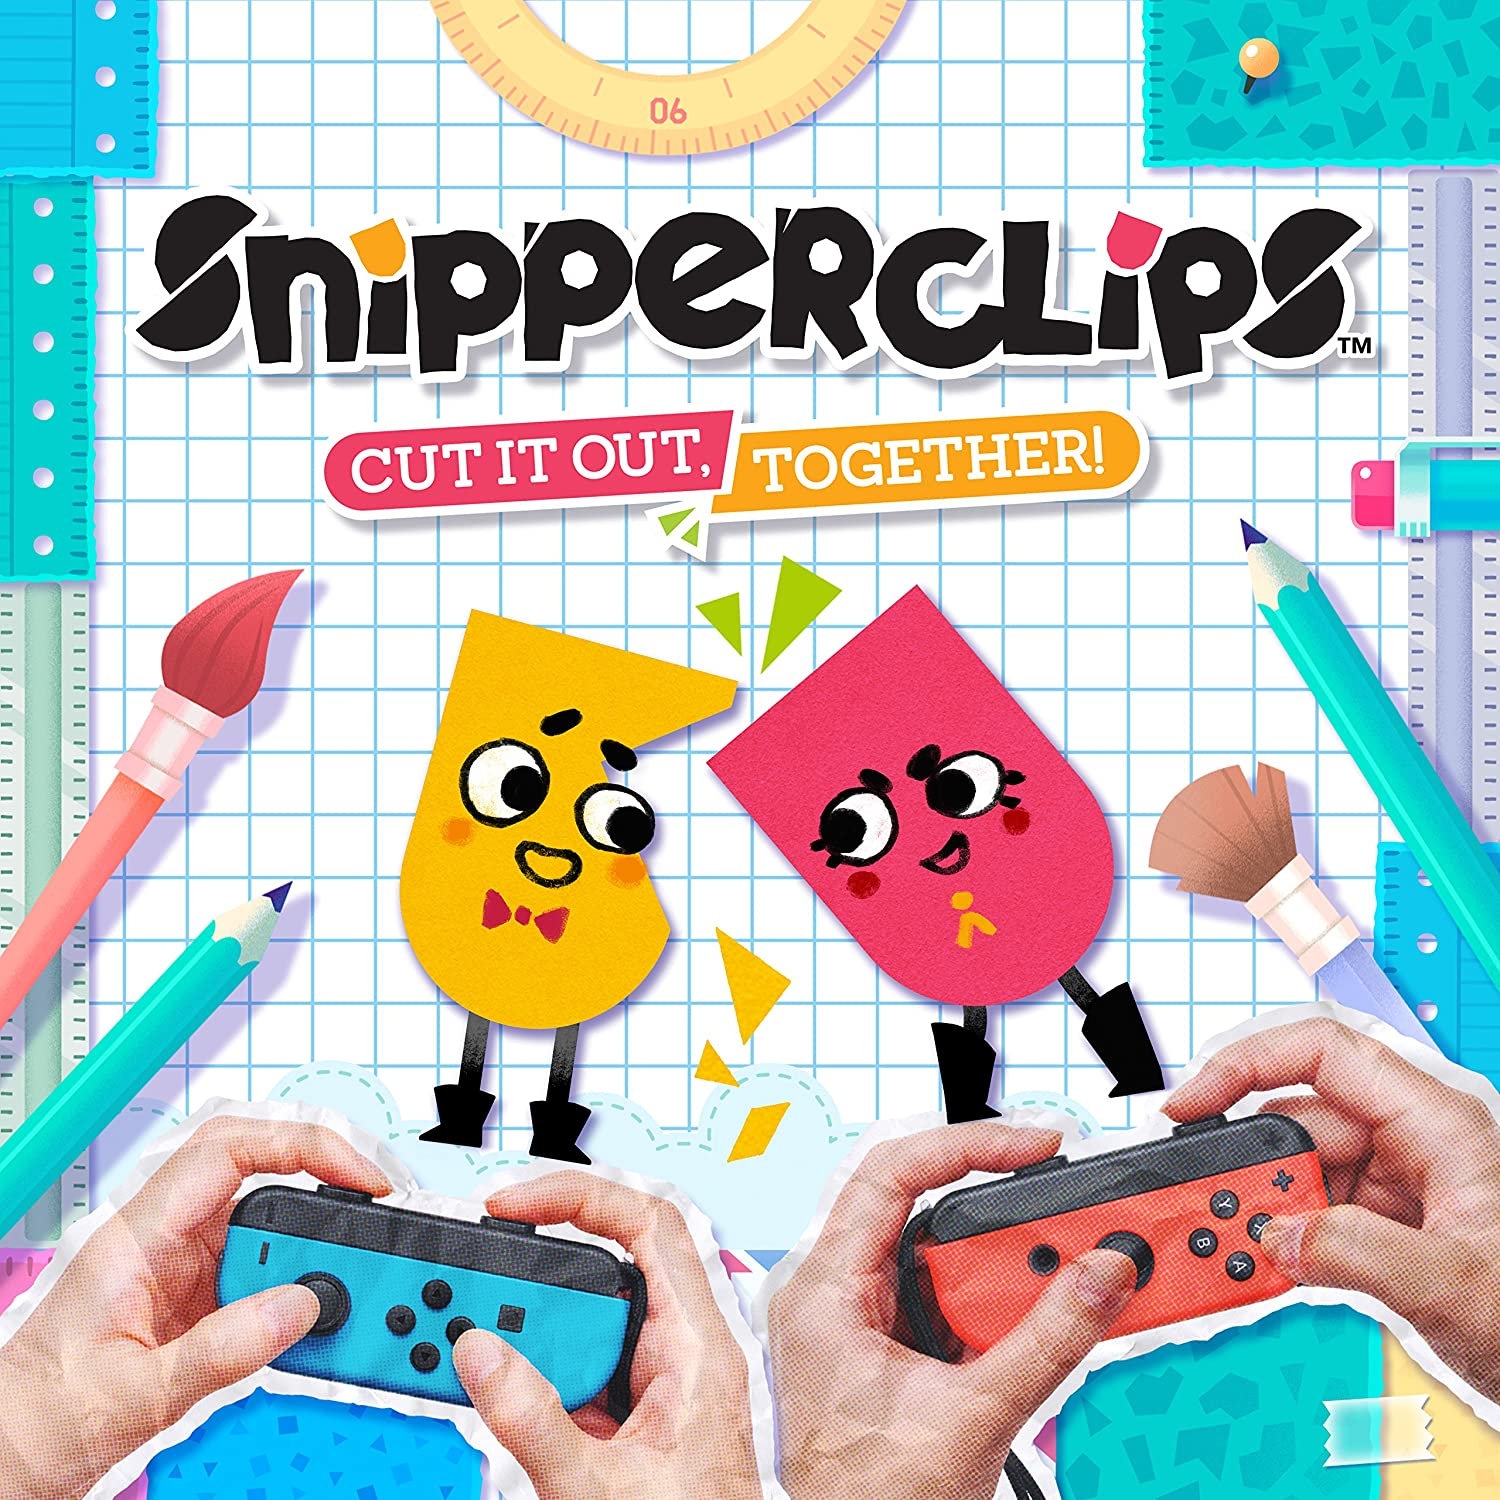 Game Snapperclips